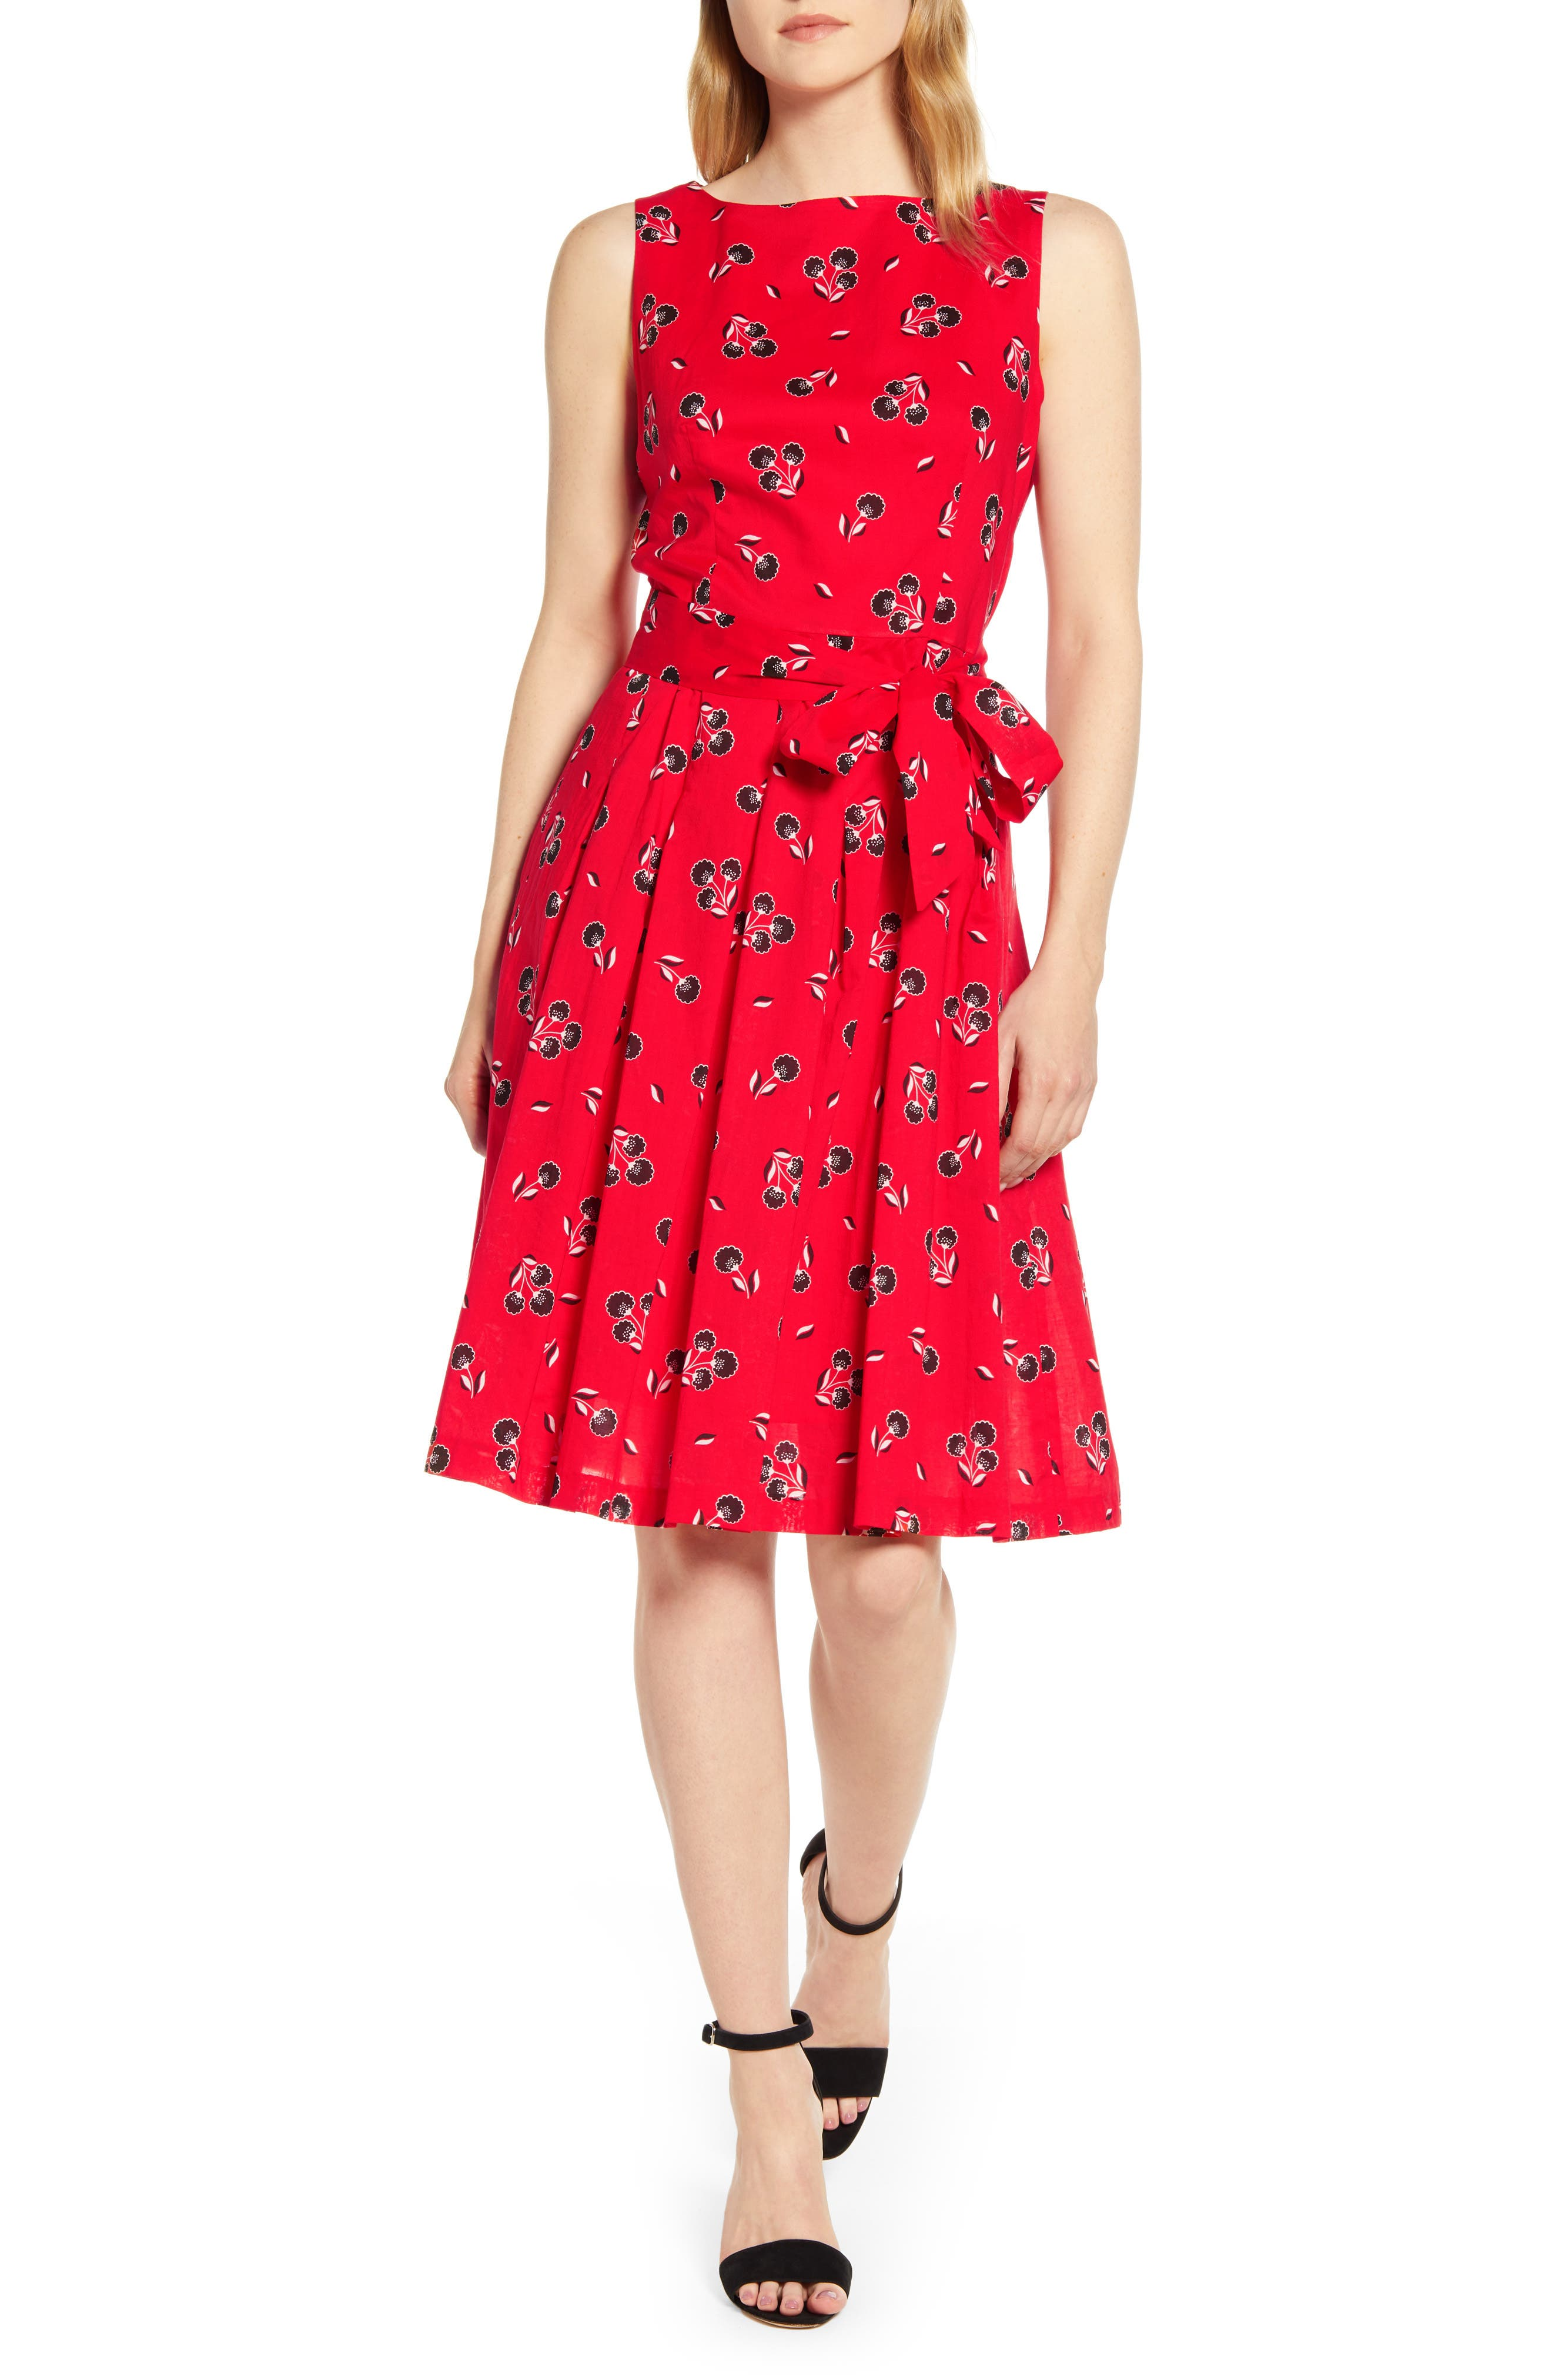 Anne Klein Tussy Mussy Fit & Flare Cotton Dress, Red